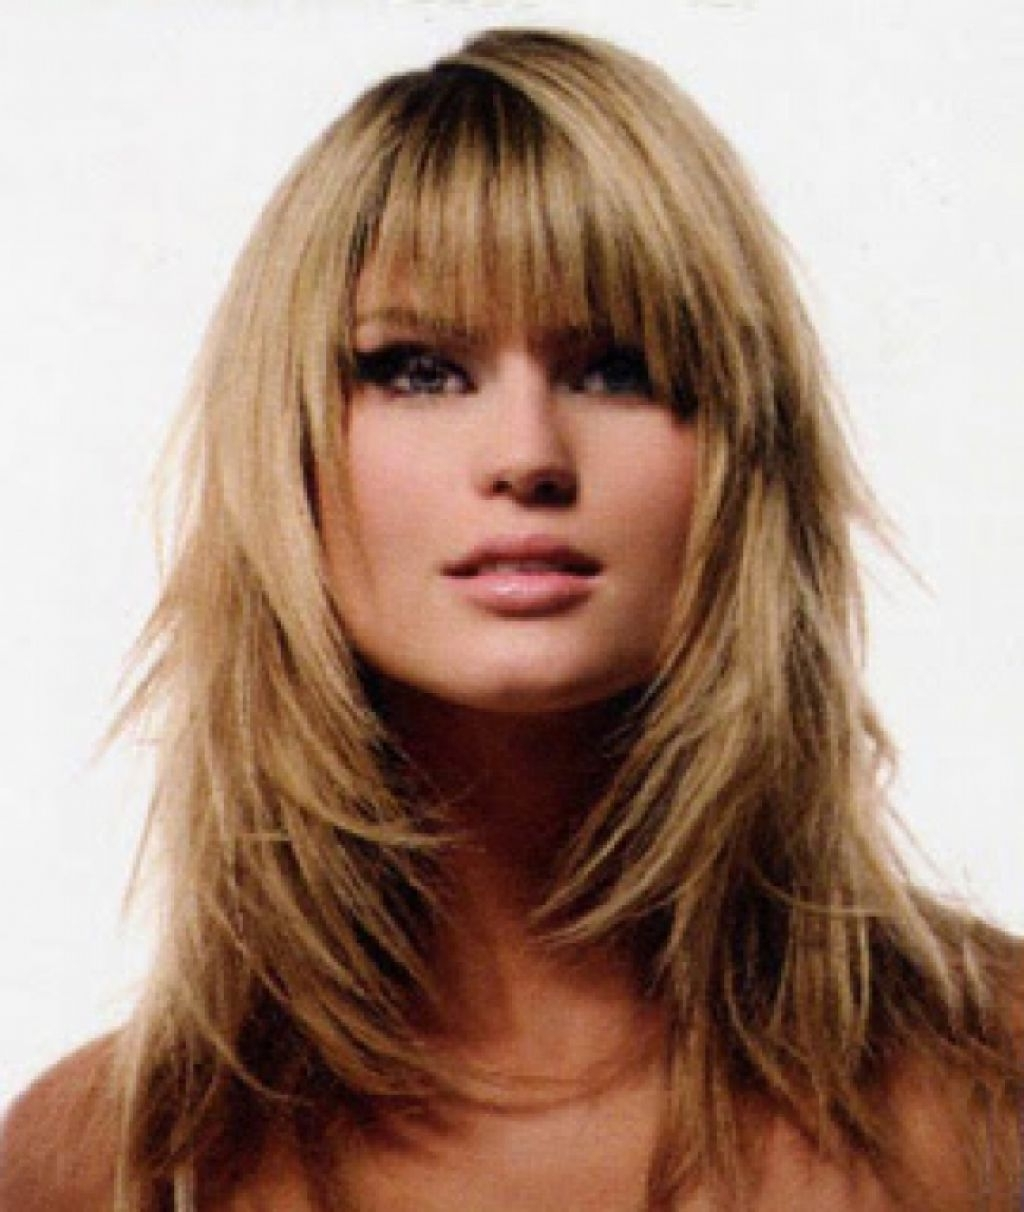 Long Shaggy Hairstyle Cuts Ideas For Ladies – Hairstyle Ideas For Regarding Favorite Shaggy Hairstyles For Oval Faces (View 6 of 15)